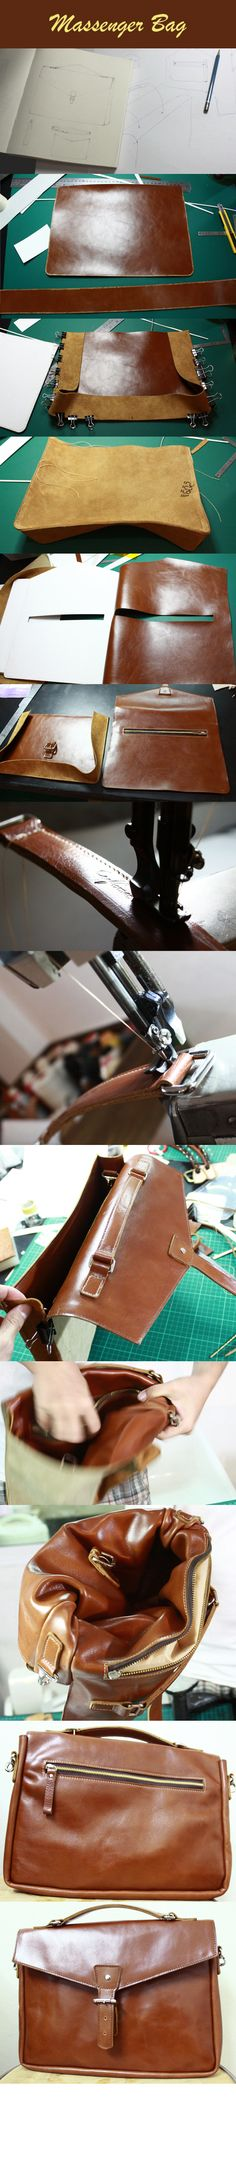 Classic leather bag tutorial - wow!